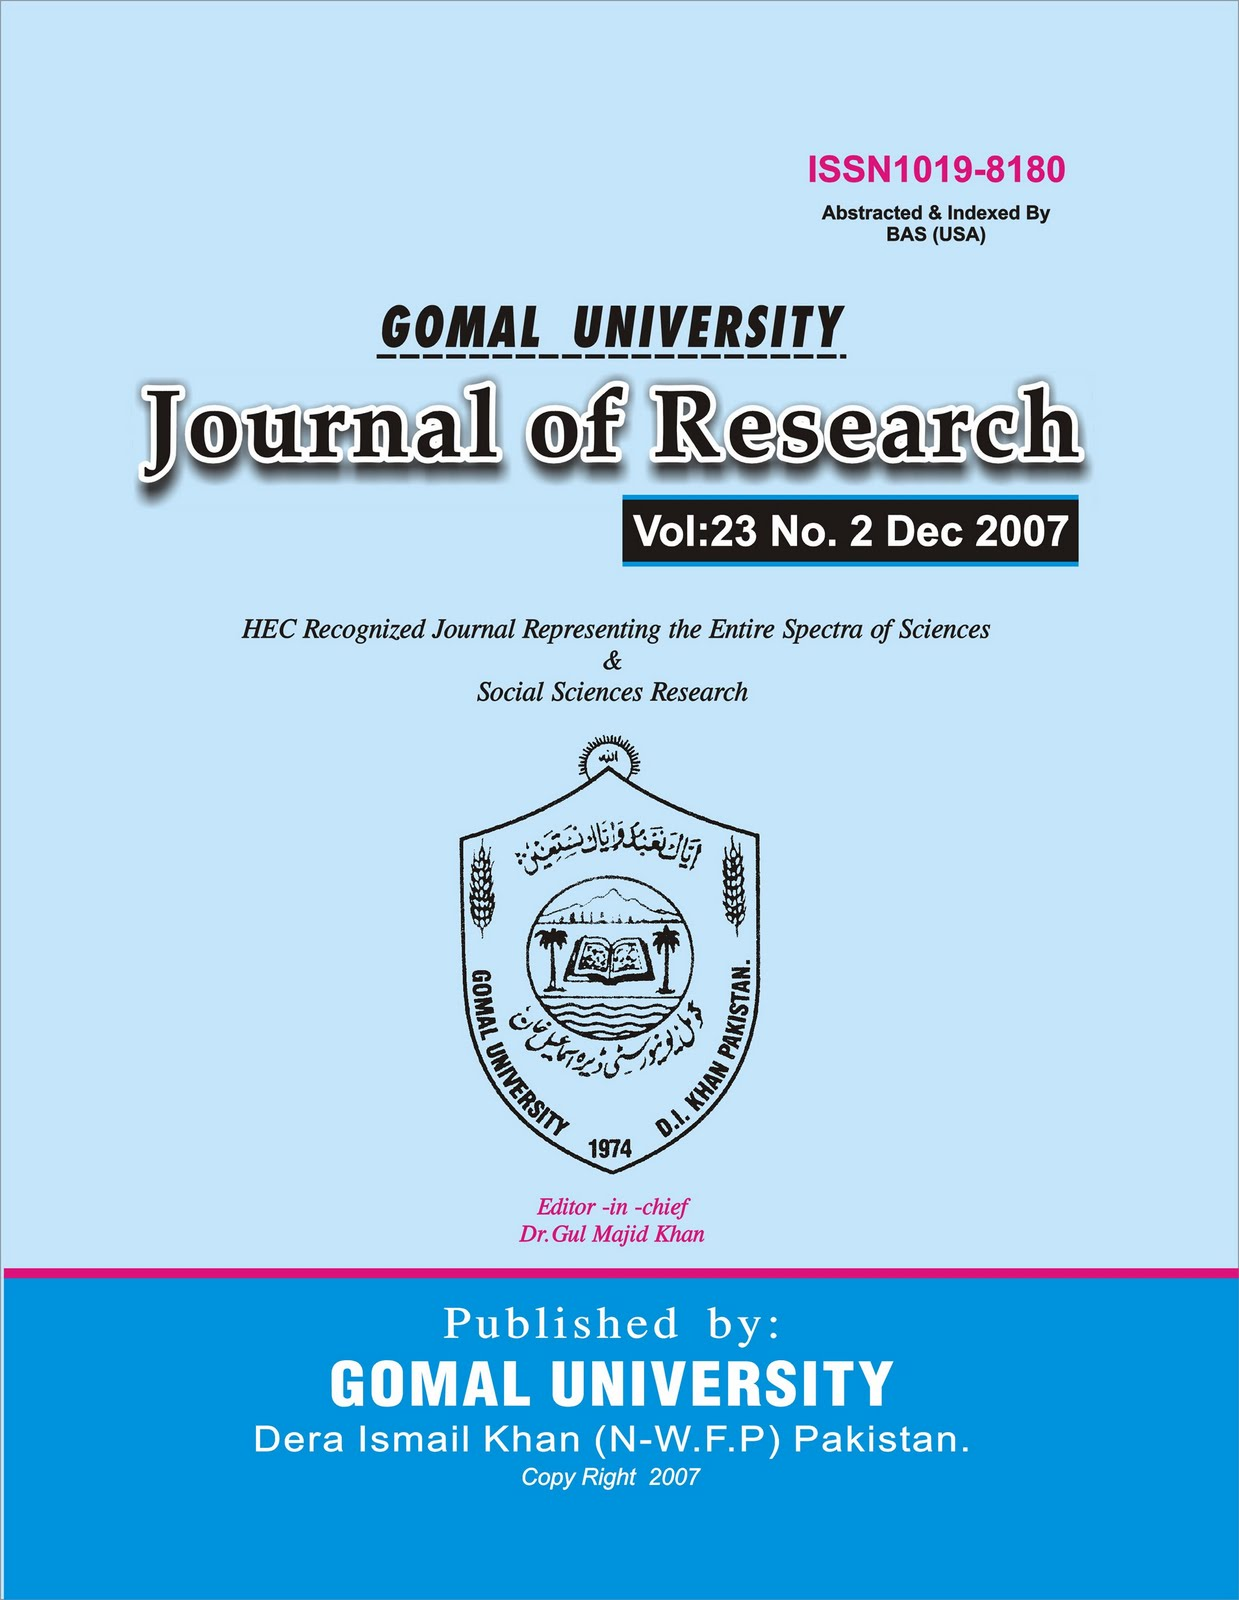 Gomal university journal of research